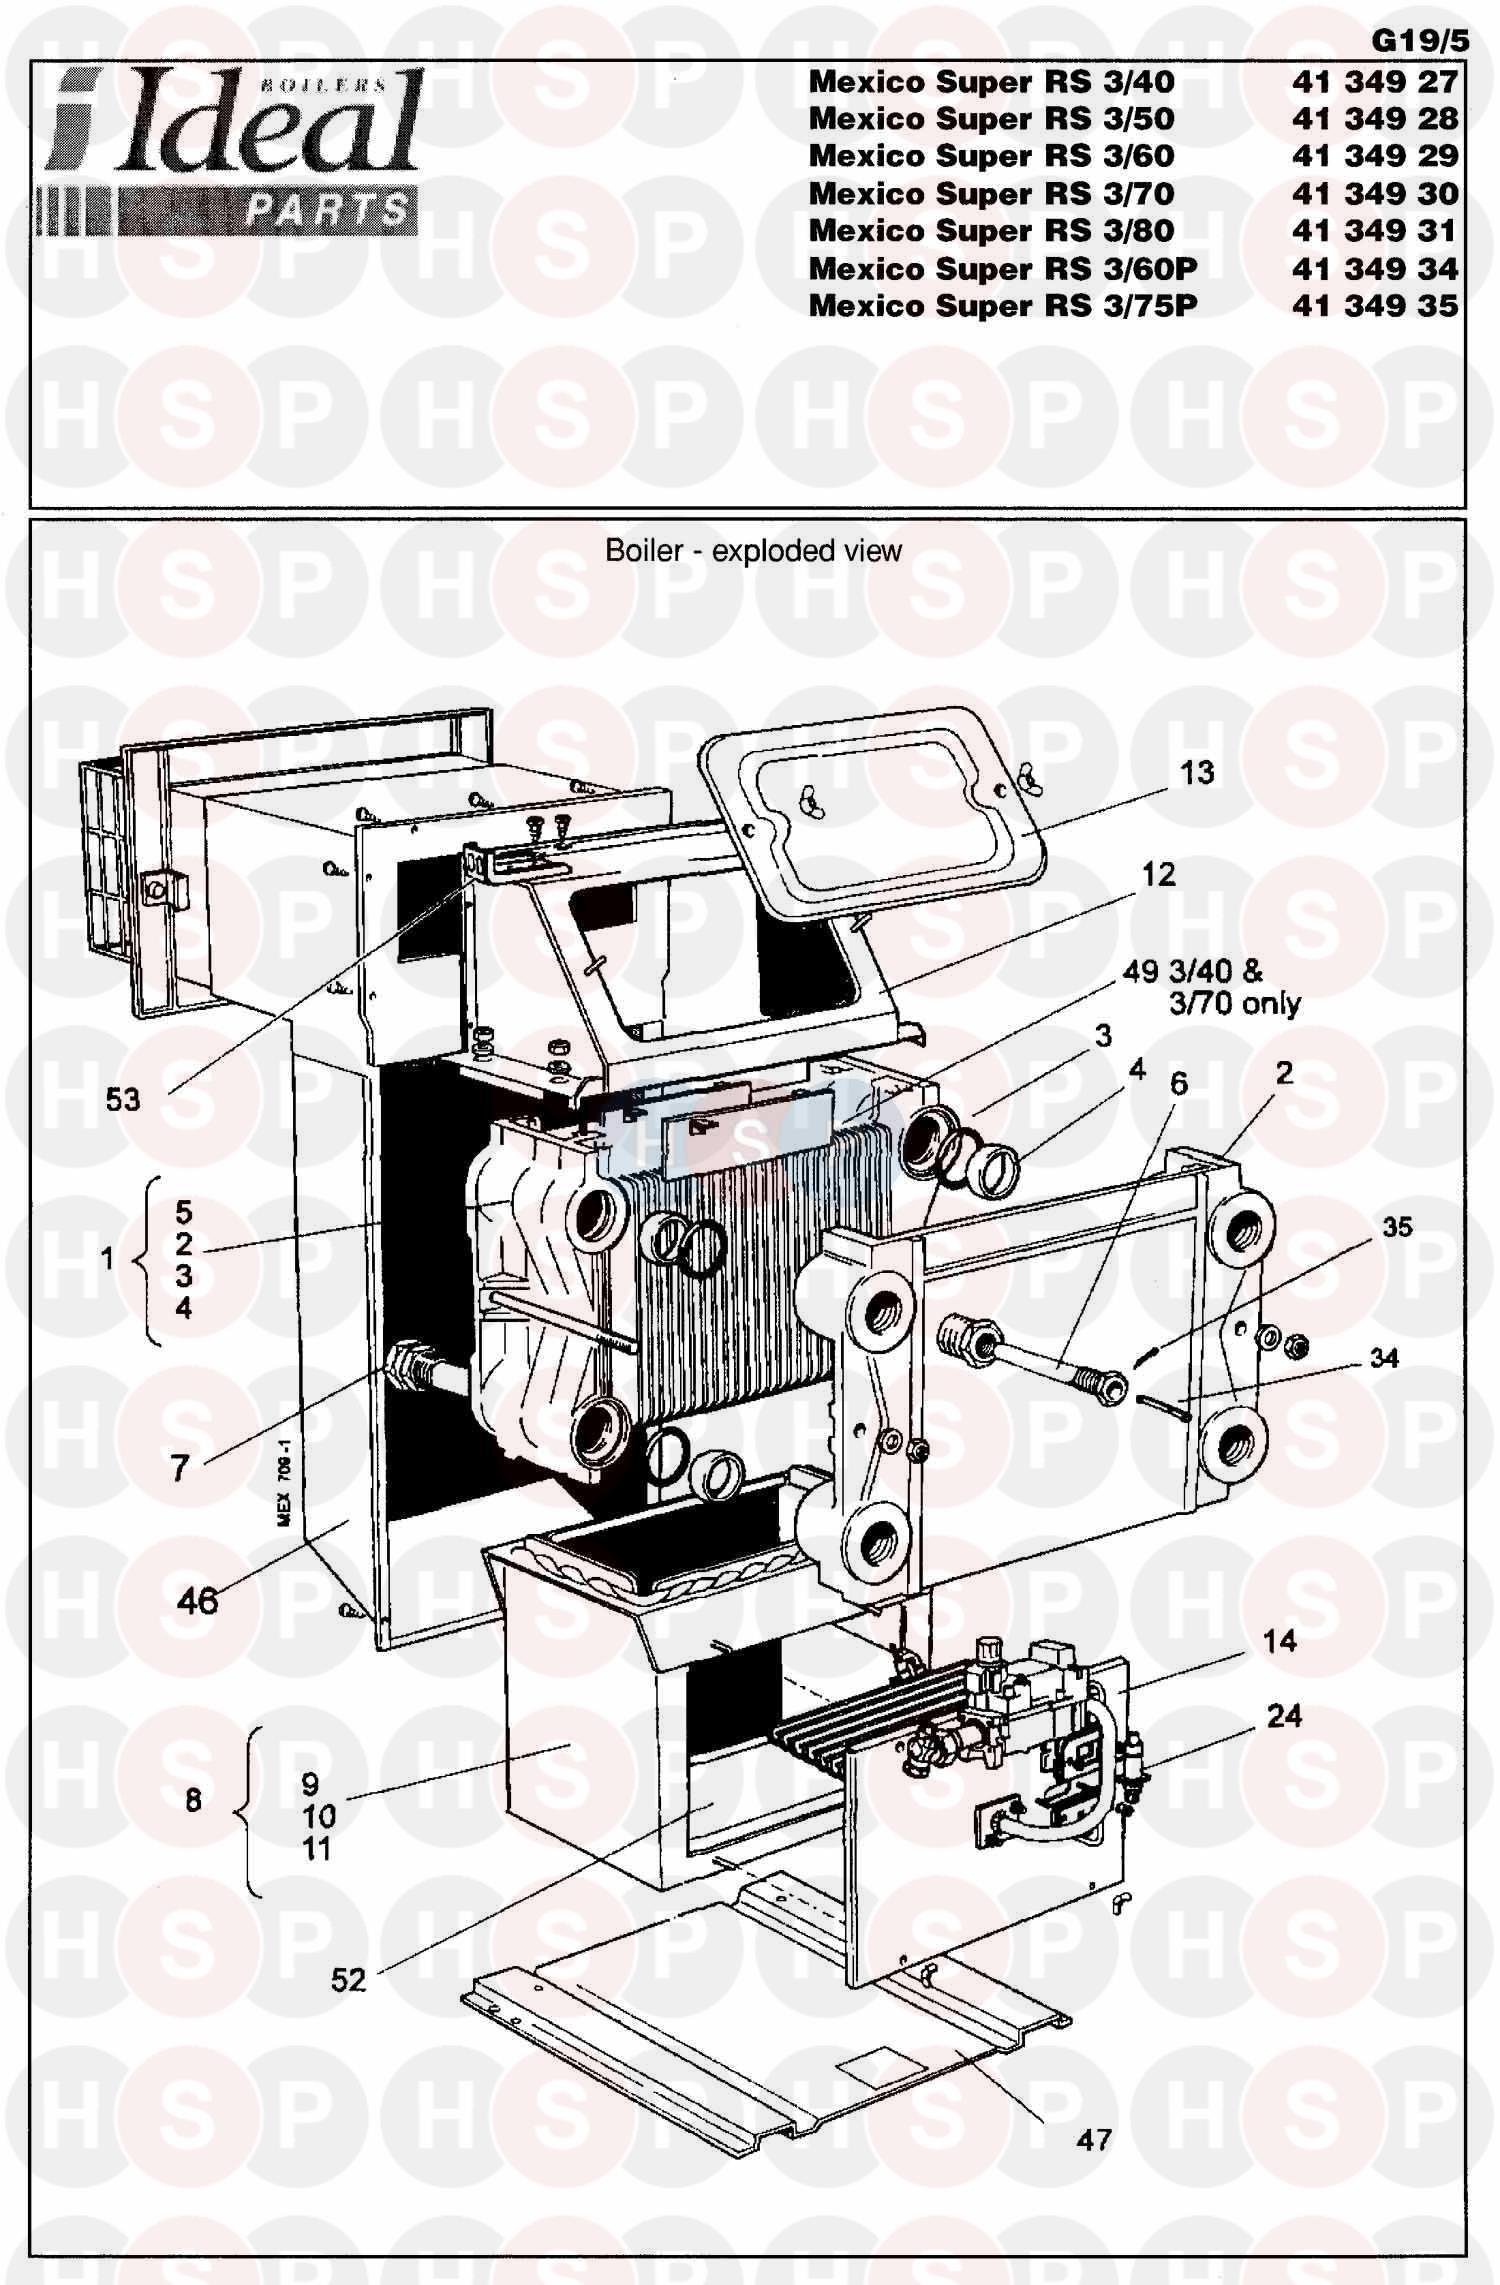 Ideal MEXICO SUPER 3 RS 100 (BOILER ASSEMBLY 1) Diagram